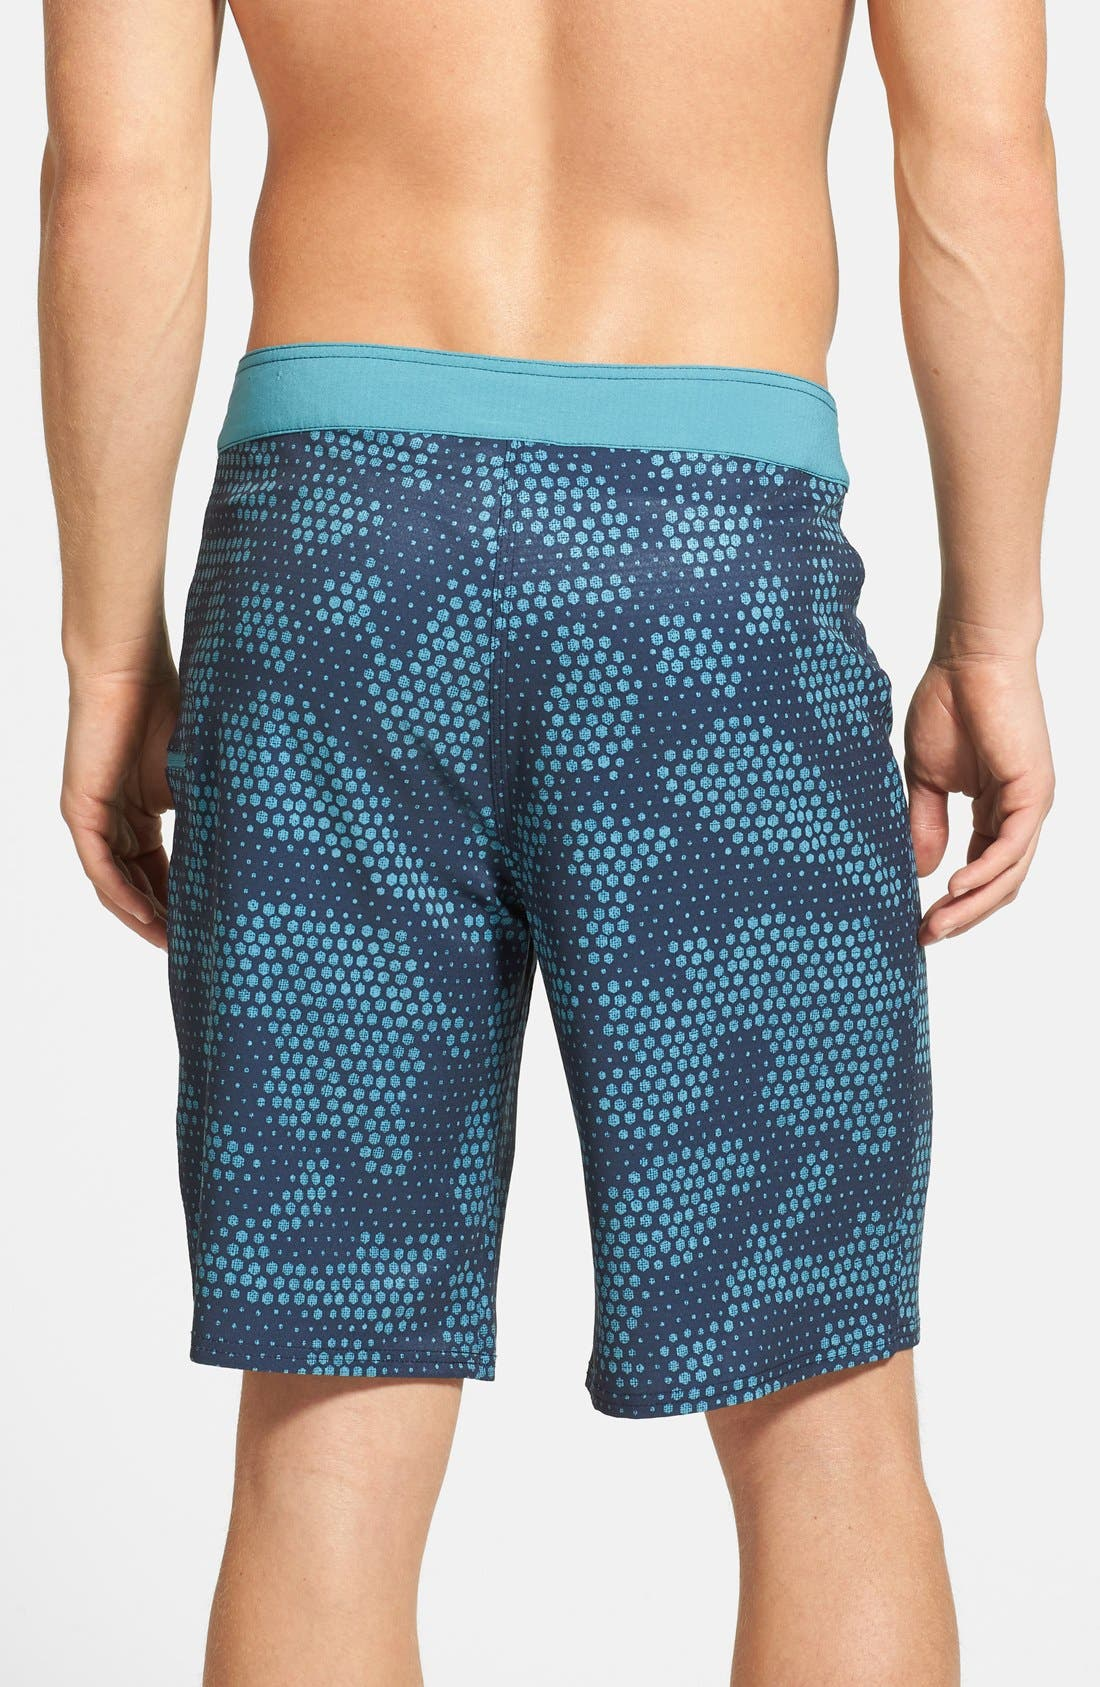 Alternate Image 2  - The North Face 'Olas' Board Shorts